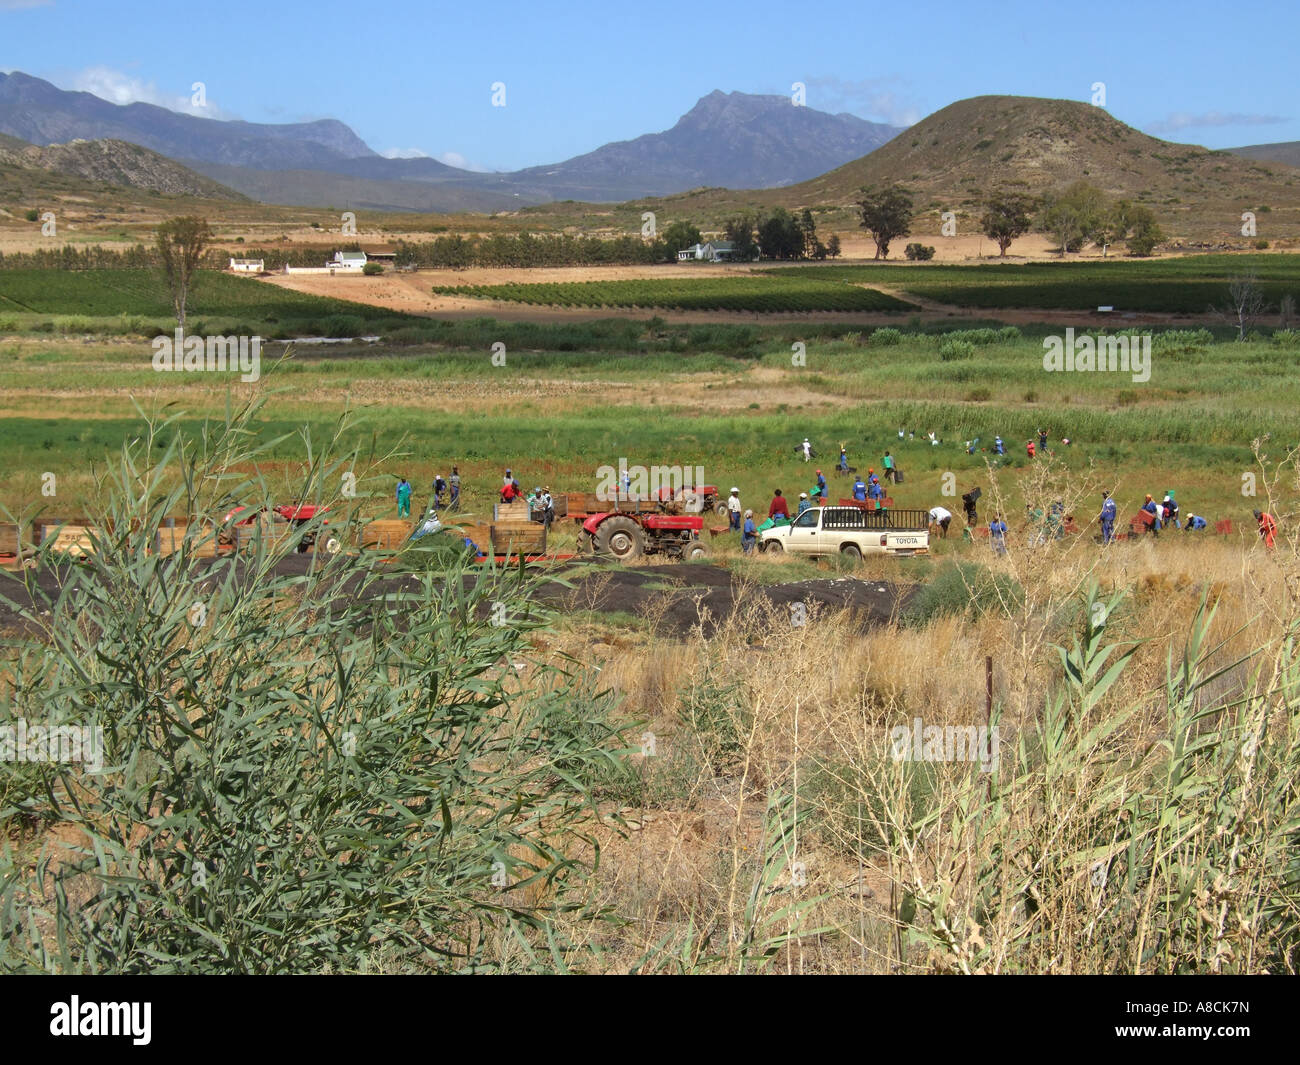 Mcgregor South Africa  city photos gallery : Farm Workers Mcgregor Western Cape South Africa Stock Photo, Royalty ...